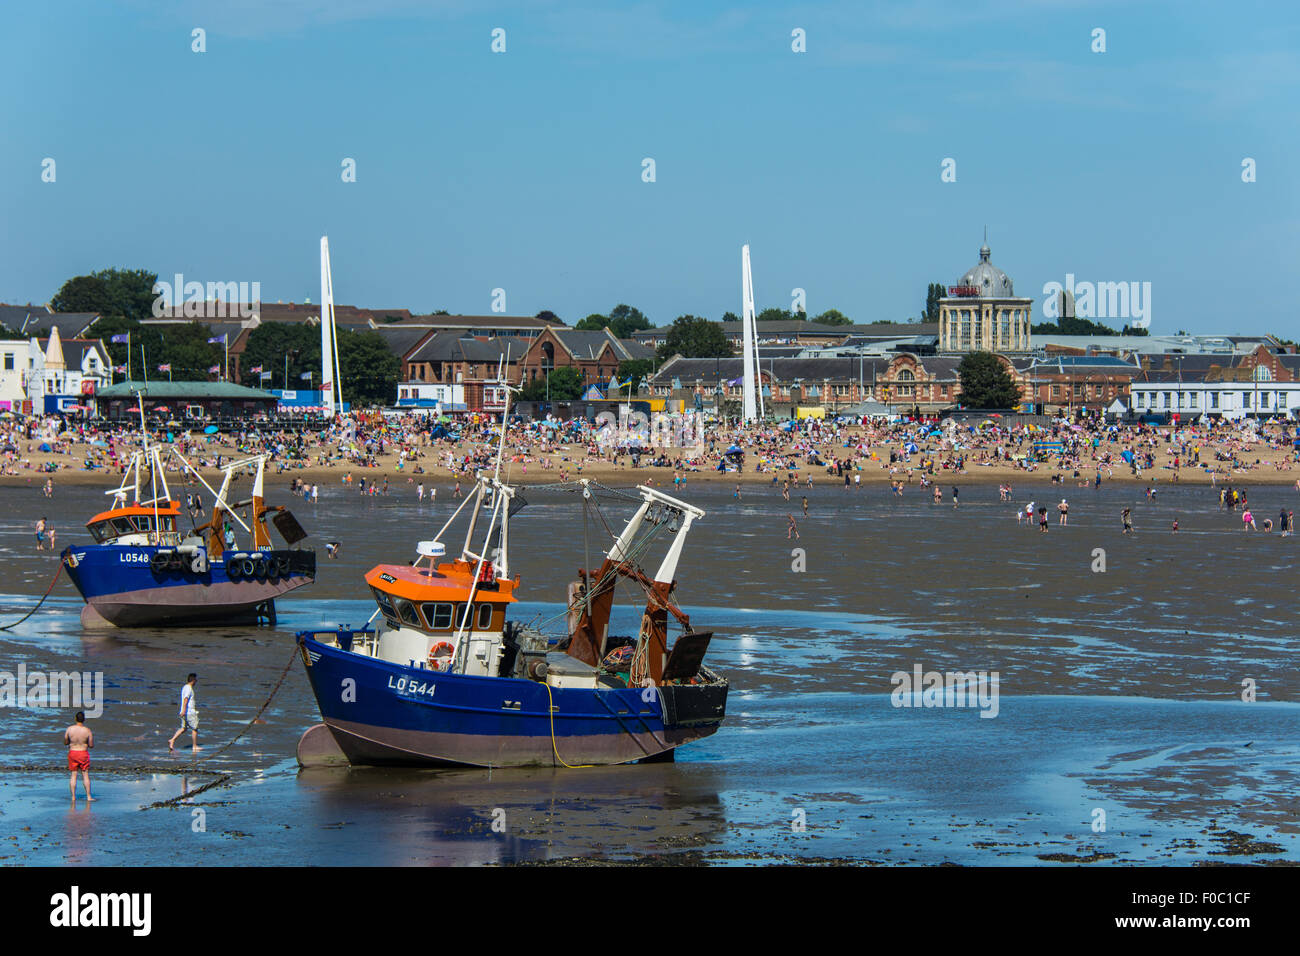 The beach at Southend-on-Sea, with Kursaal, seen from pier - Stock Image